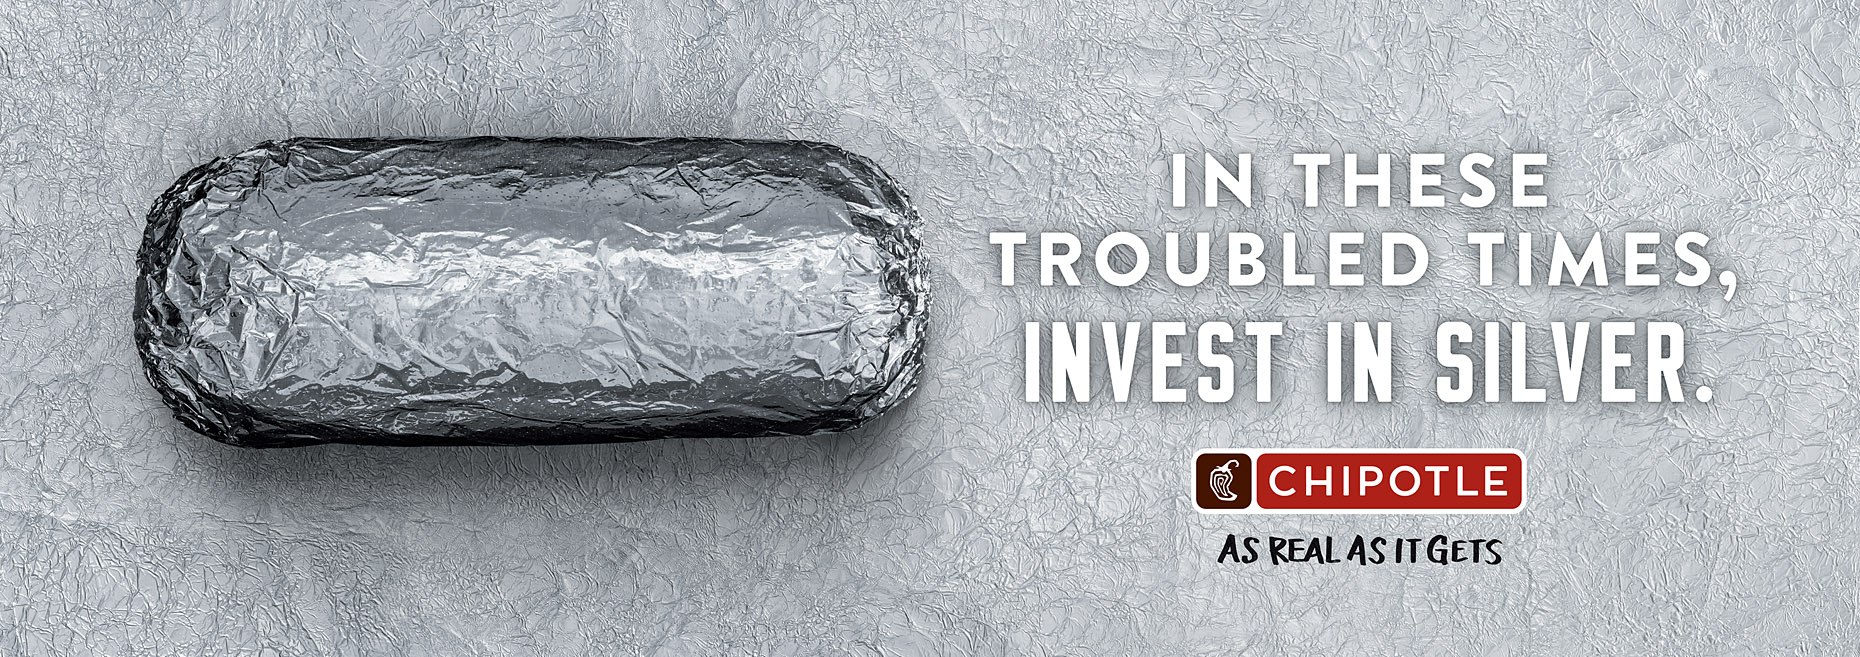 MC_Chipotle_Ad_Burrito_Foil